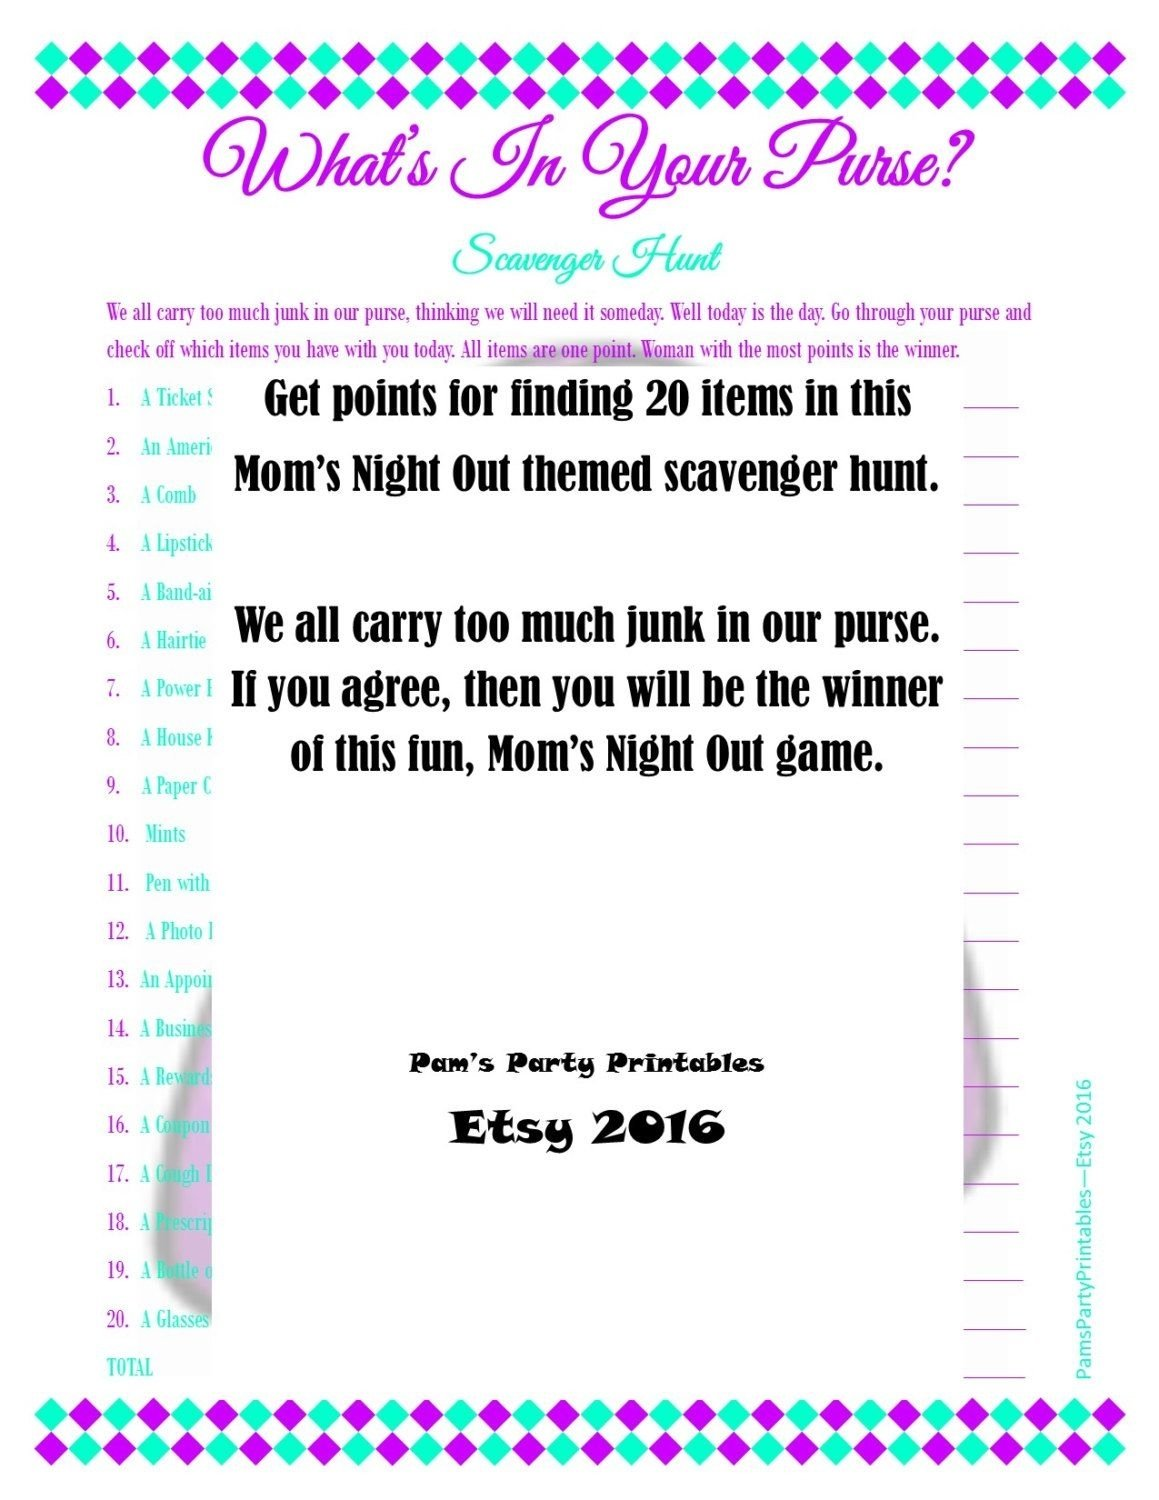 10 Ideal Girls Night Out Scavenger Hunt Ideas moms night game whats in your purse scavenger hunt moms night 2021